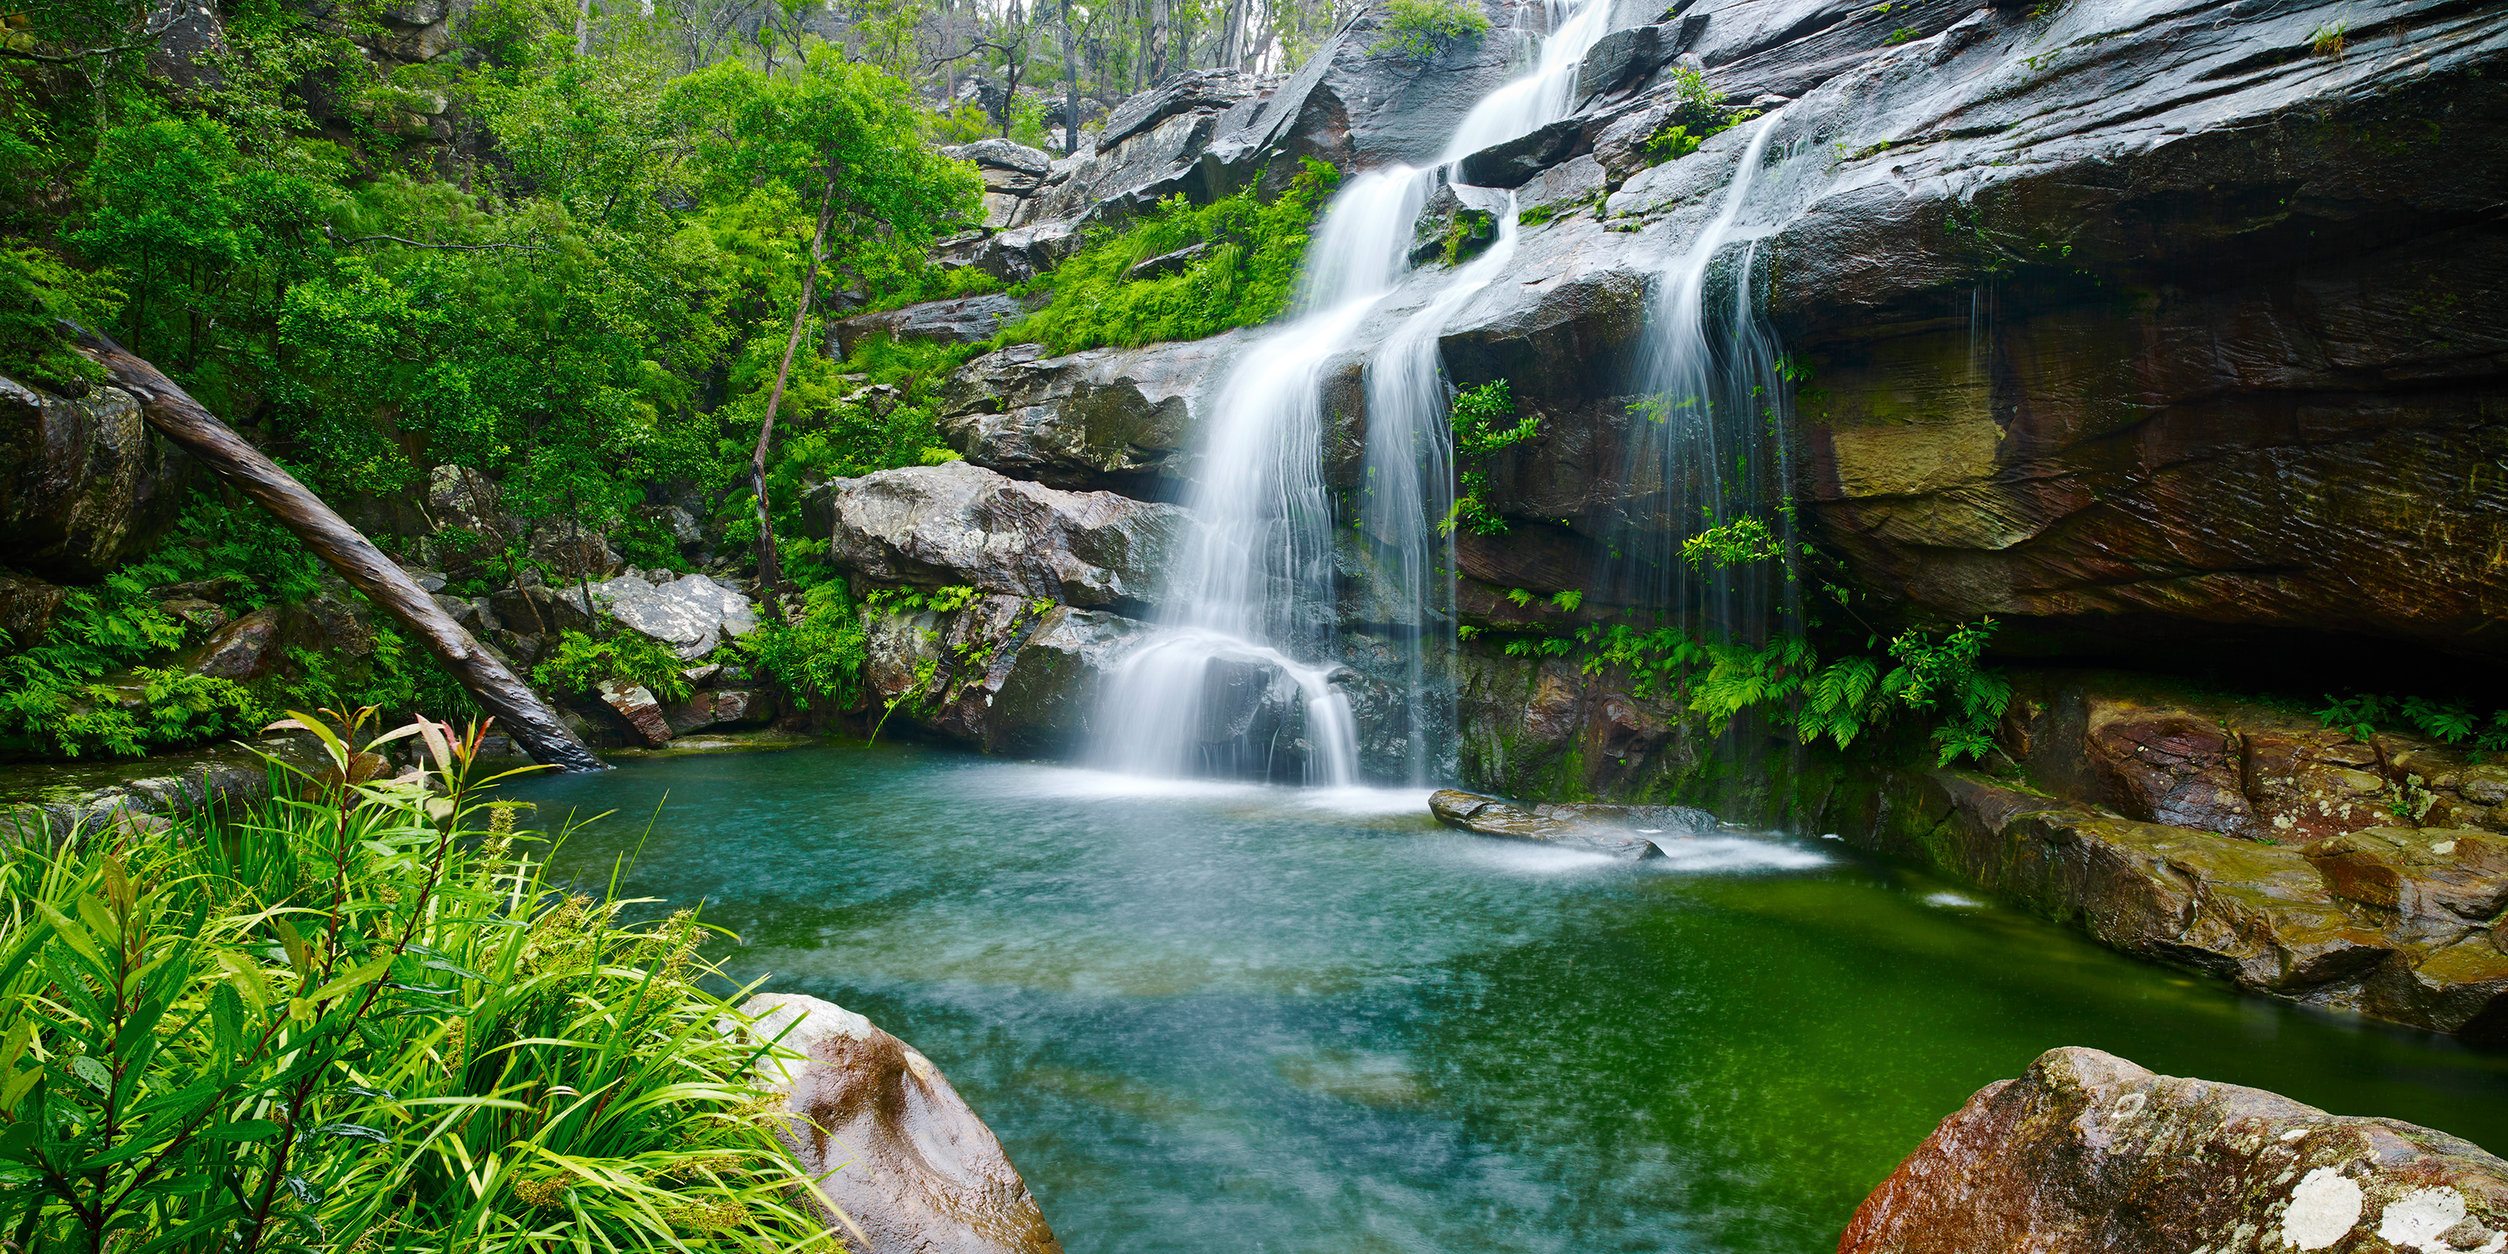 Wild-Swimming-Australia©Swimming-Hole_Scouts-Waterfall-SherwoodNR_Scouts-Waterfall_071_AndyLewis_PrintCrop.jpg